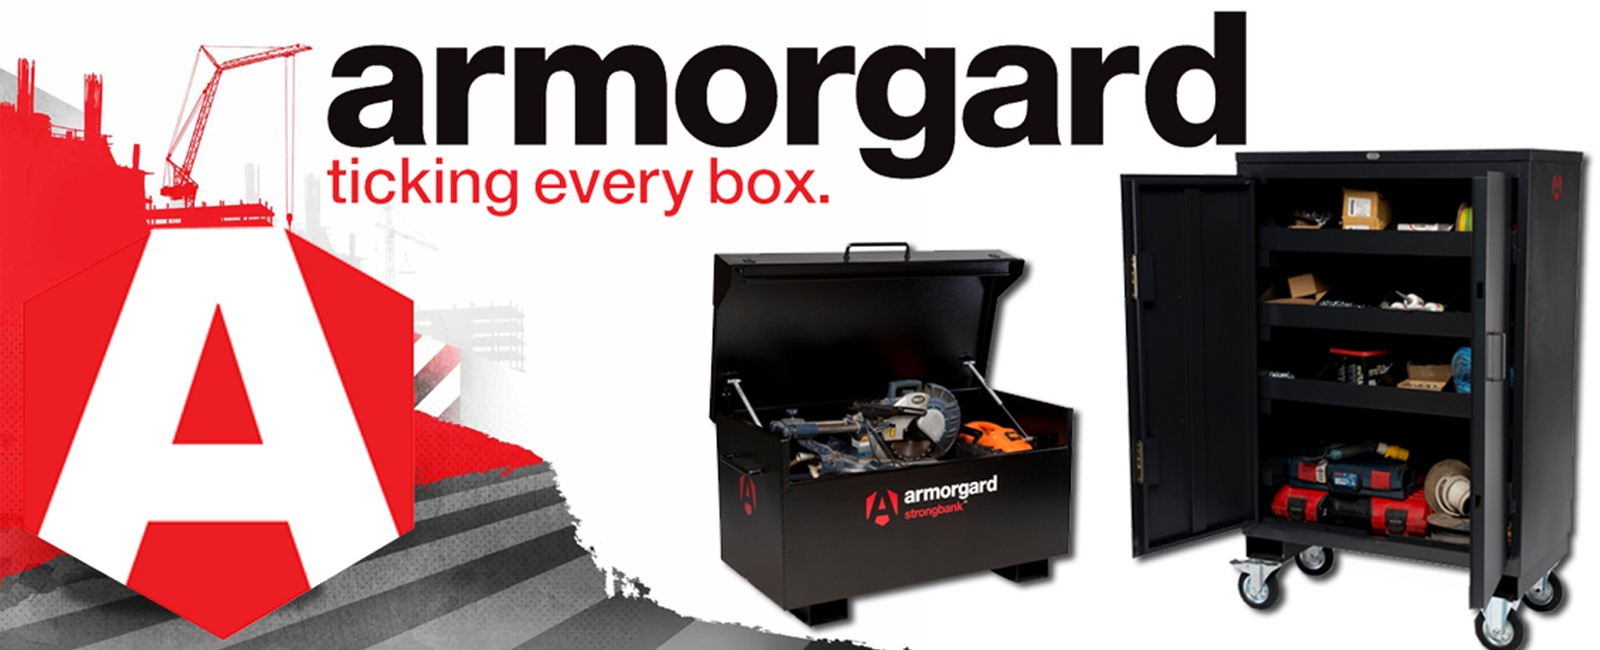 Armorgard Security Products